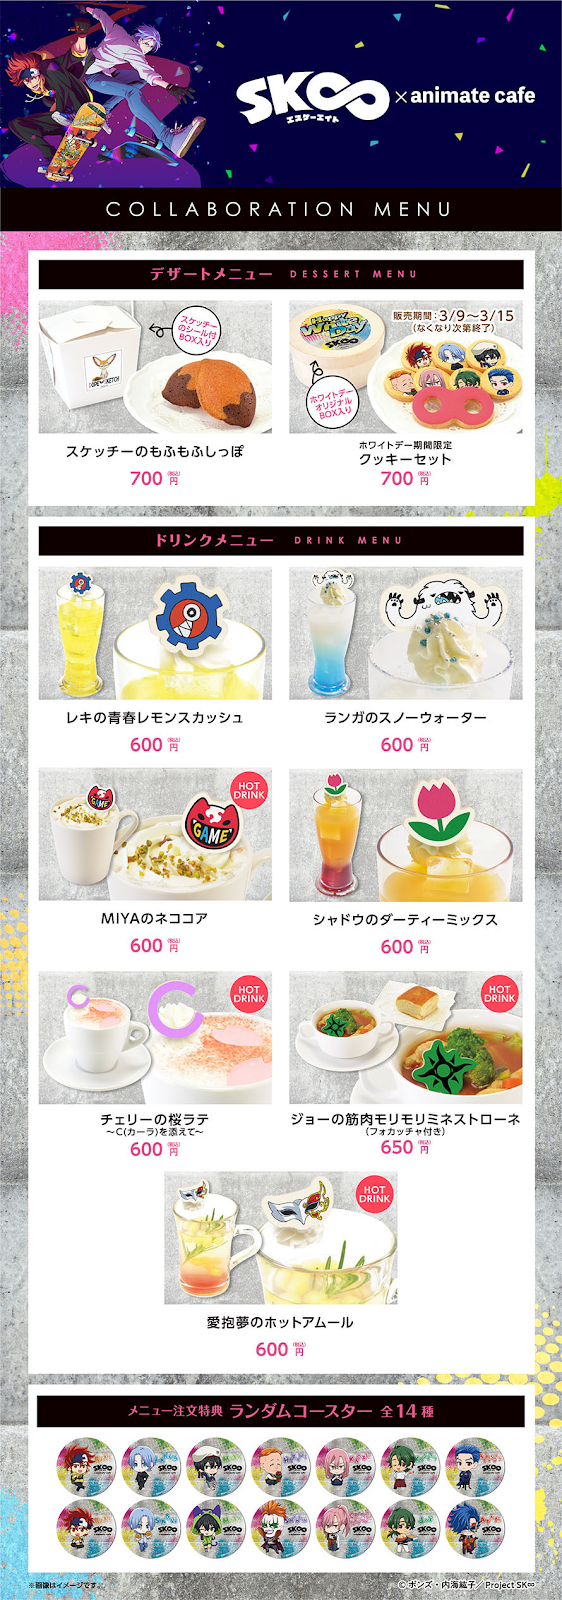 SK8 the Infinity x Animate Cafe Collaboration Menu